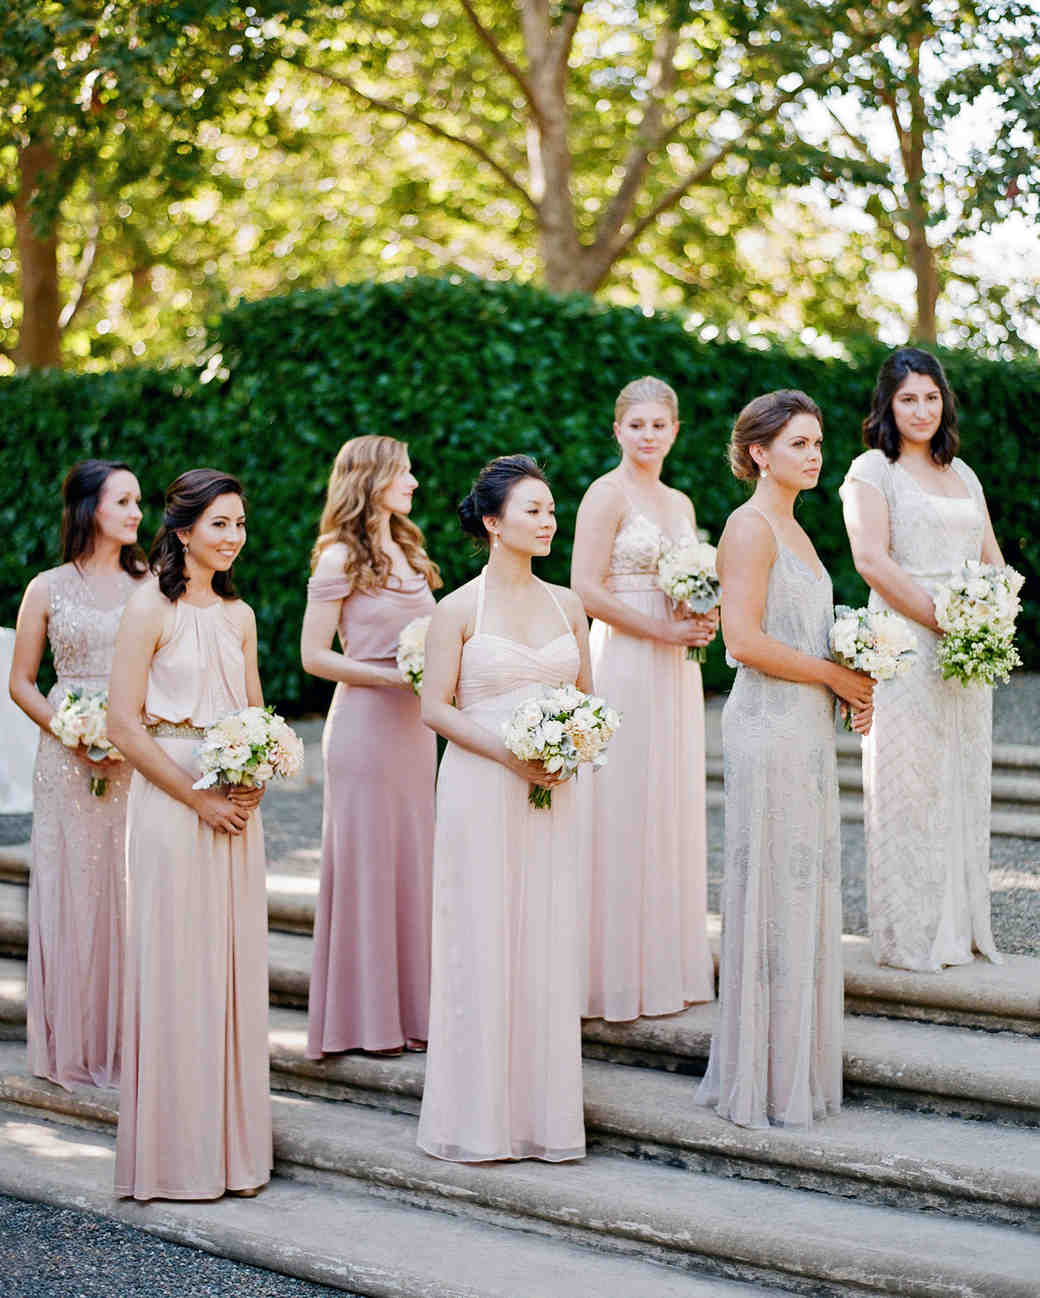 2ef151d82da 28 Mismatched Bridesmaids Dresses from Real Weddings - Best Mix and Match  Bridesmaids Dresses